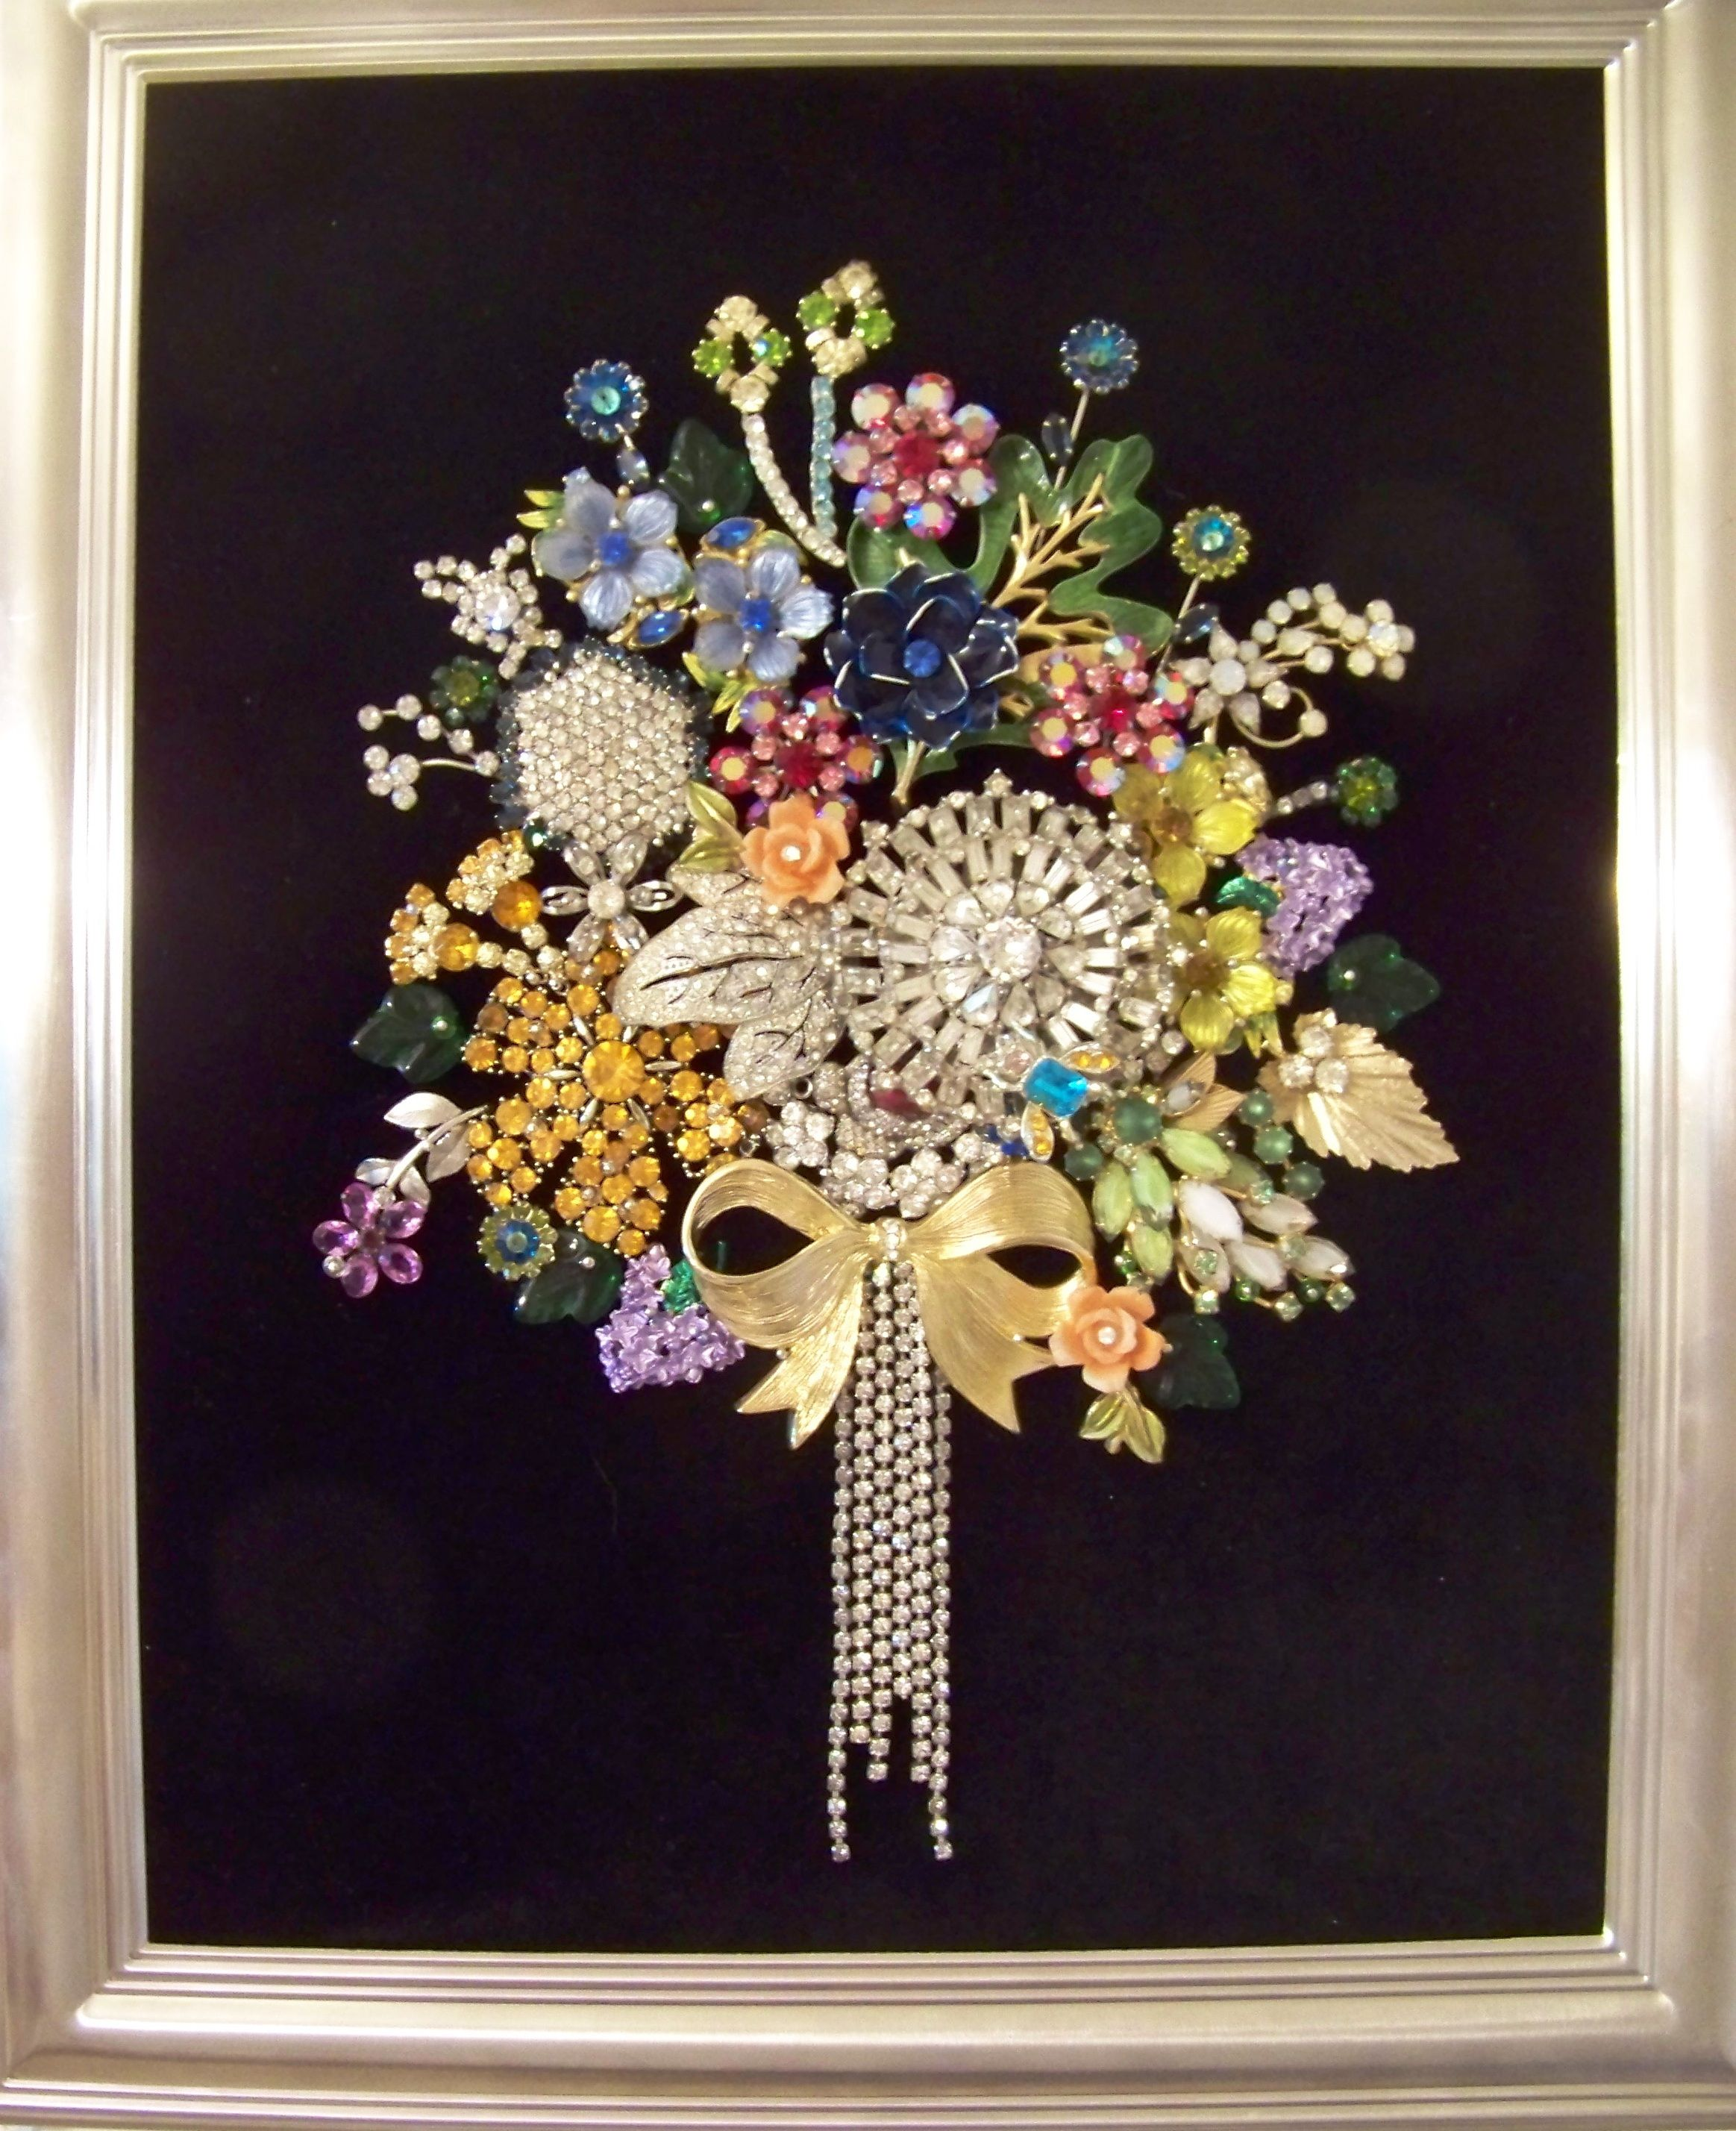 Rhinestone jewels for crafts - My Bouquet Of Rhinestones Created With Vintage Brooches Earrings Rhinestone And Placed In A